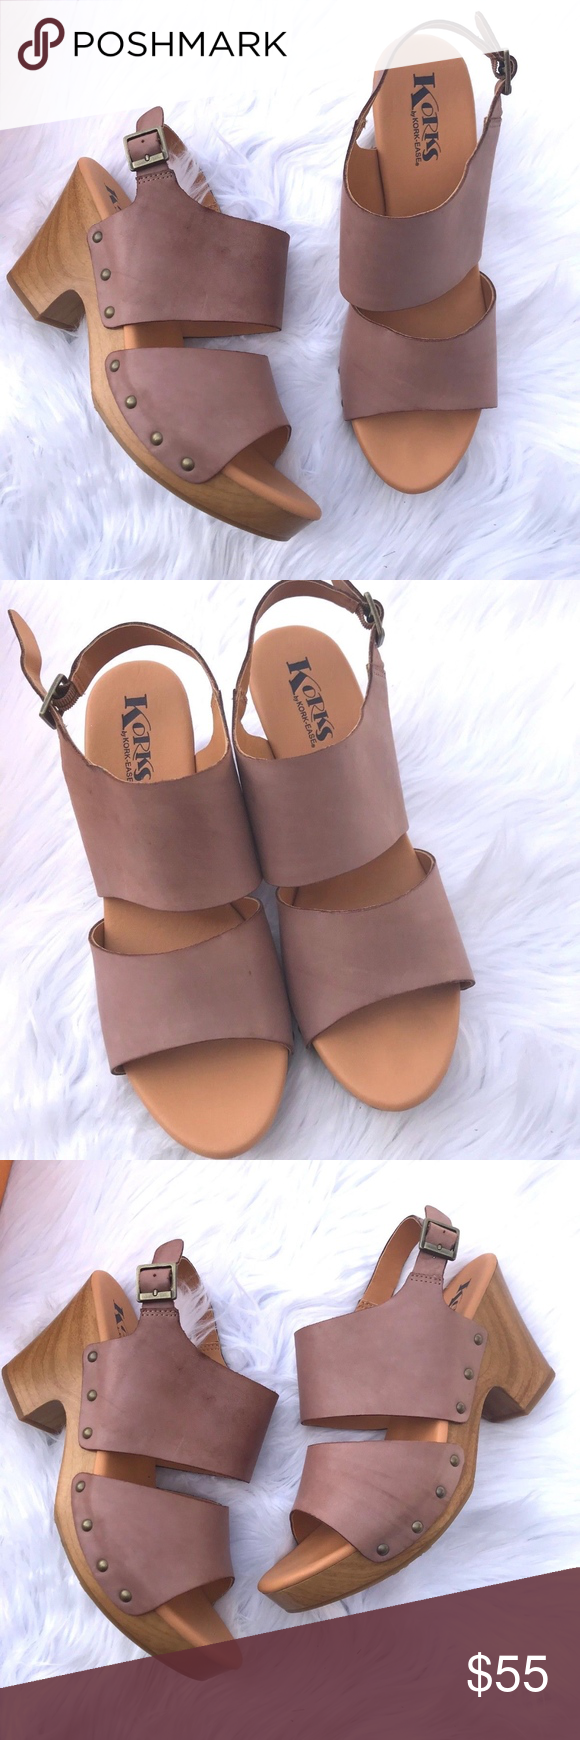 9bd2eb03974d Korks by Kork Ease Annaleigh Platform Clog Sandals Size- 11 Condition- New  in box